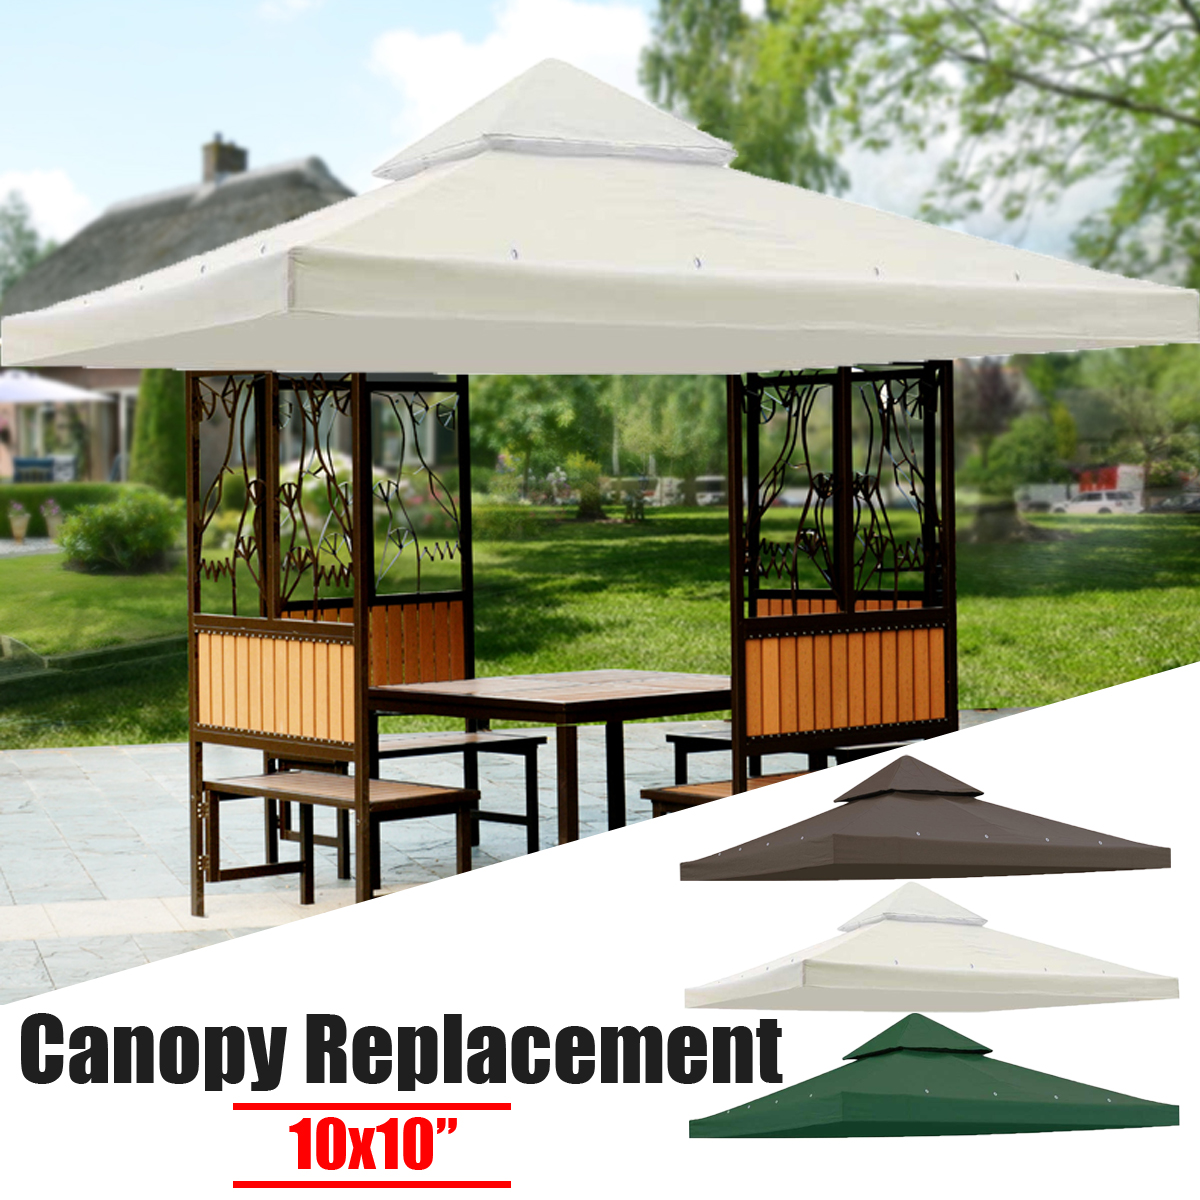 10x10 Gazebo Top Canopy Replacement Outdoor Courtyard Swimming Pool Gazebo Canopy Triangles Sun Shade Sail10x10 Gazebo Top Canopy Replacement Outdoor Courtyard Swimming Pool Gazebo Canopy Triangles Sun Shade Sail